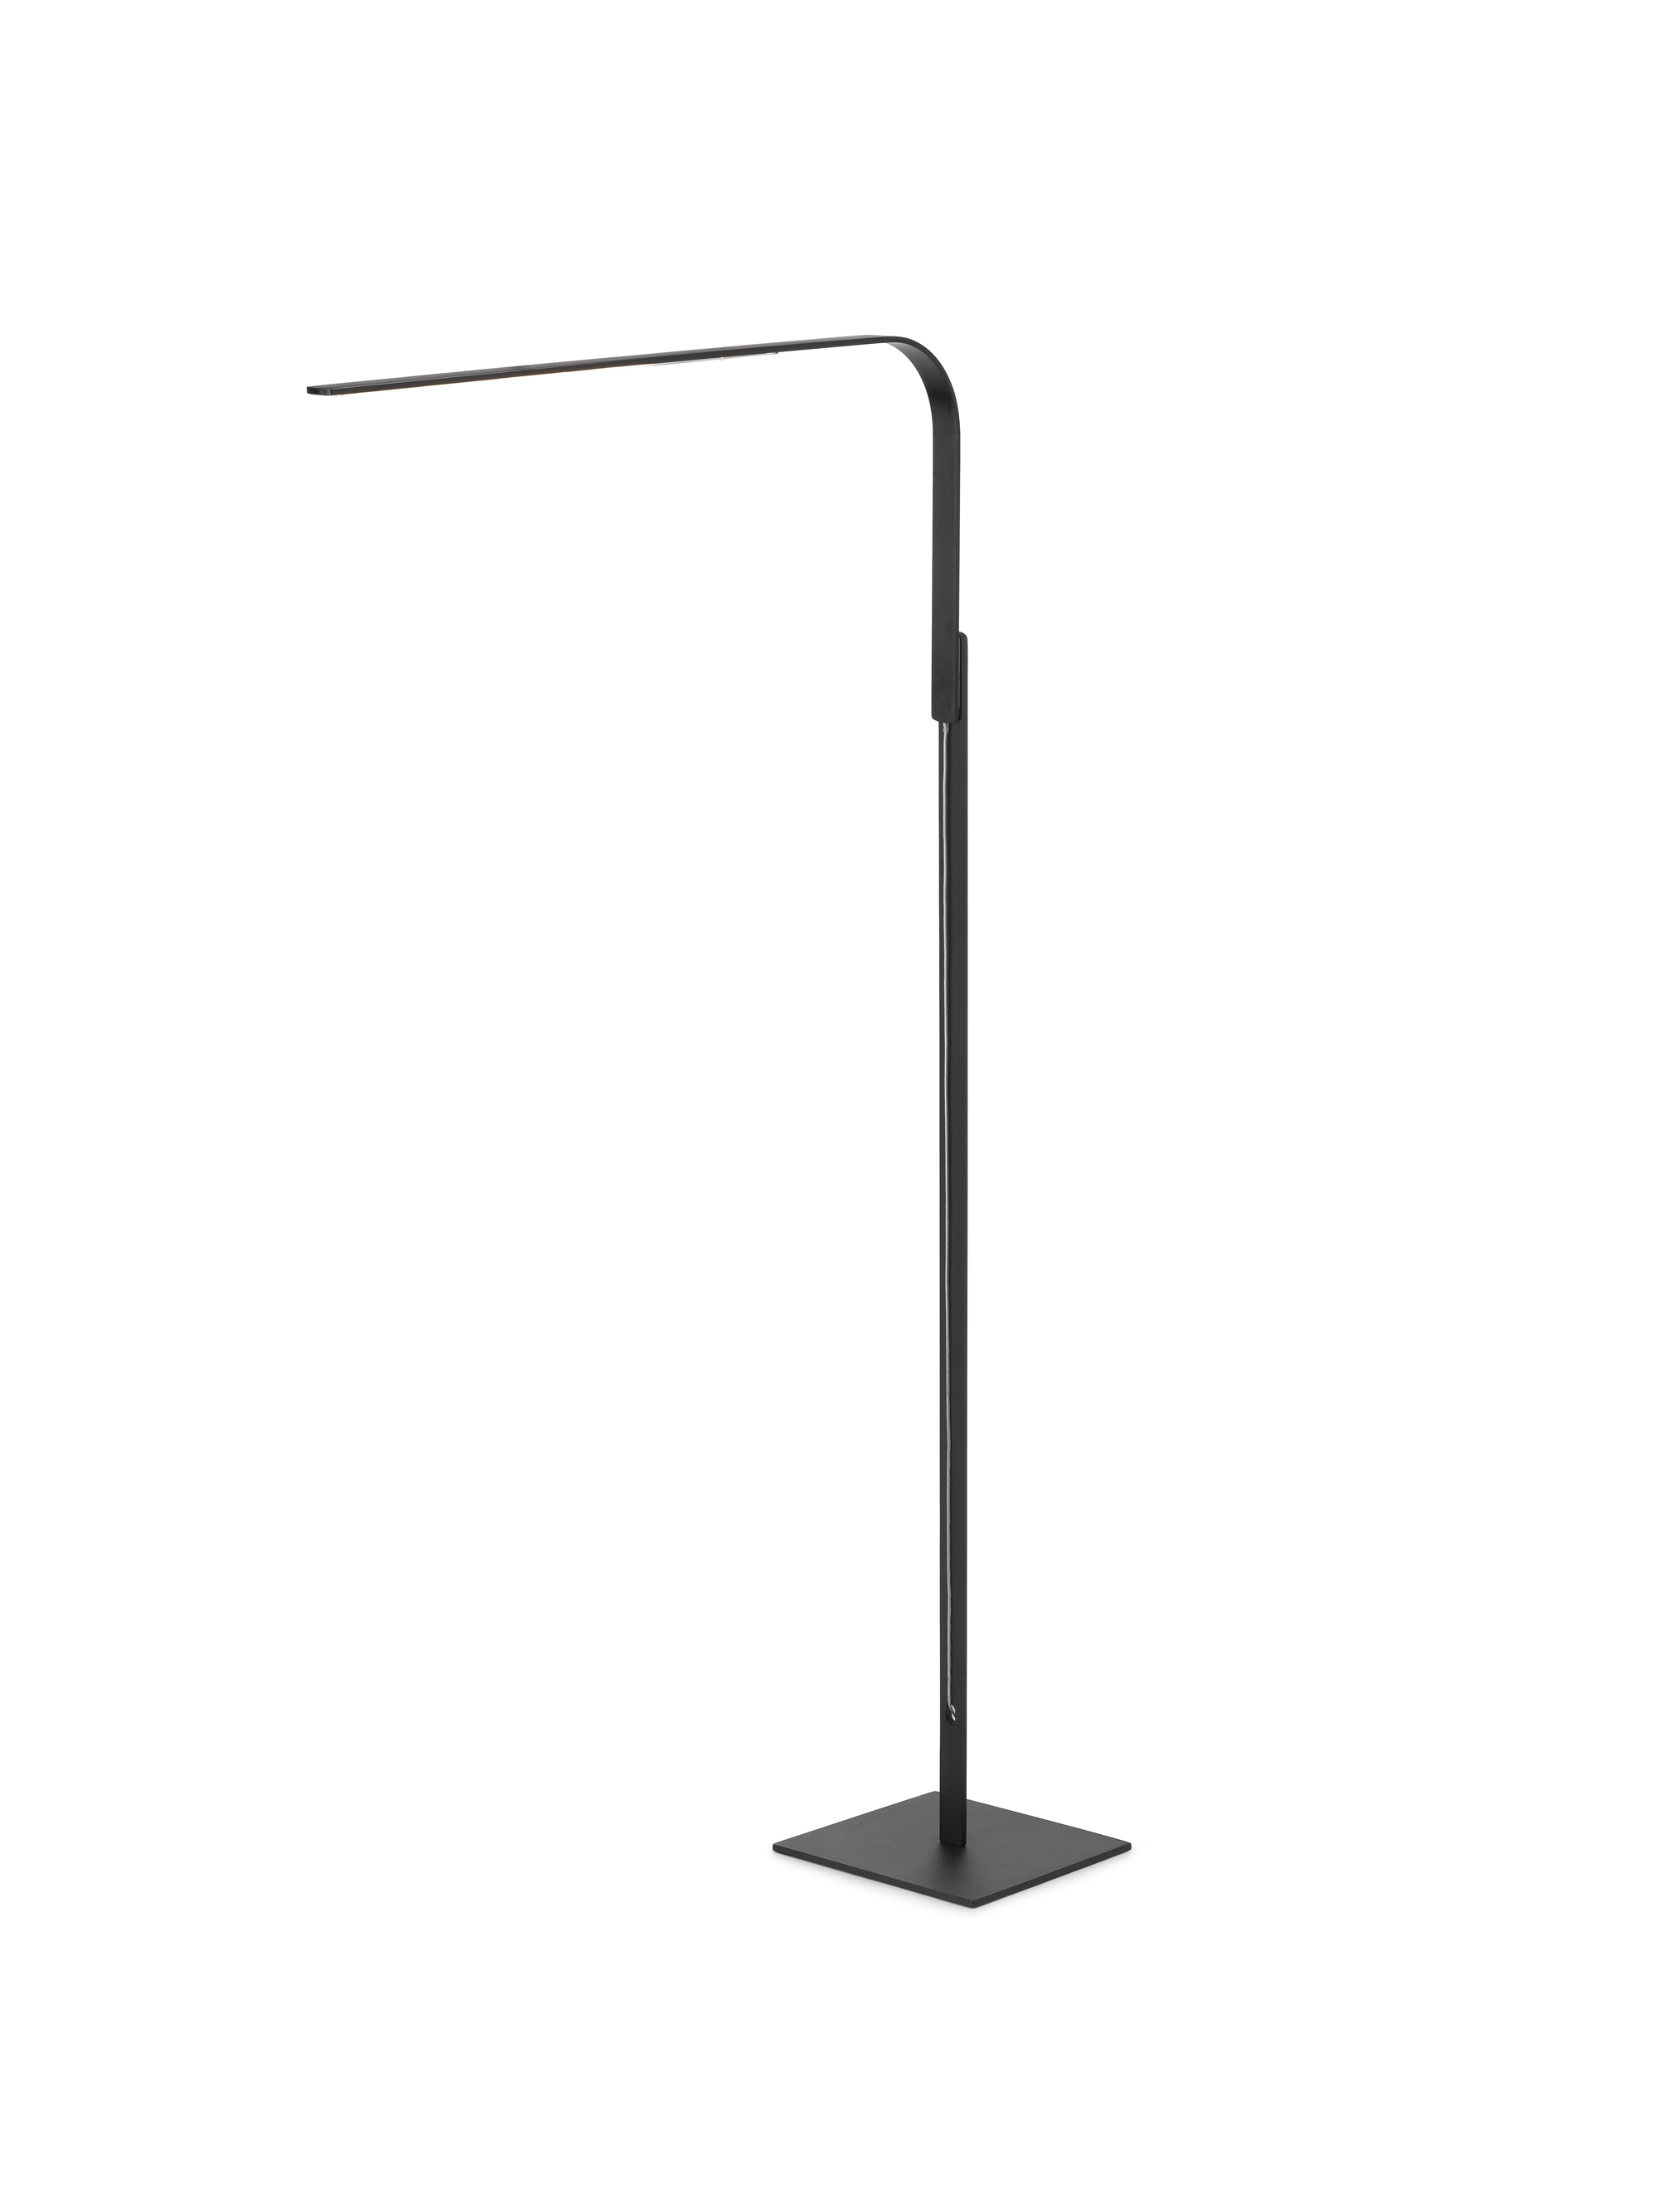 Pablo Intertek Floor Lamp on intertek led lamps, london floor lamps, philips floor lamps, walmart floor lamps, cheap floor lamps, shell floor lamps, better homes and gardens floor lamps, target floor lamps,